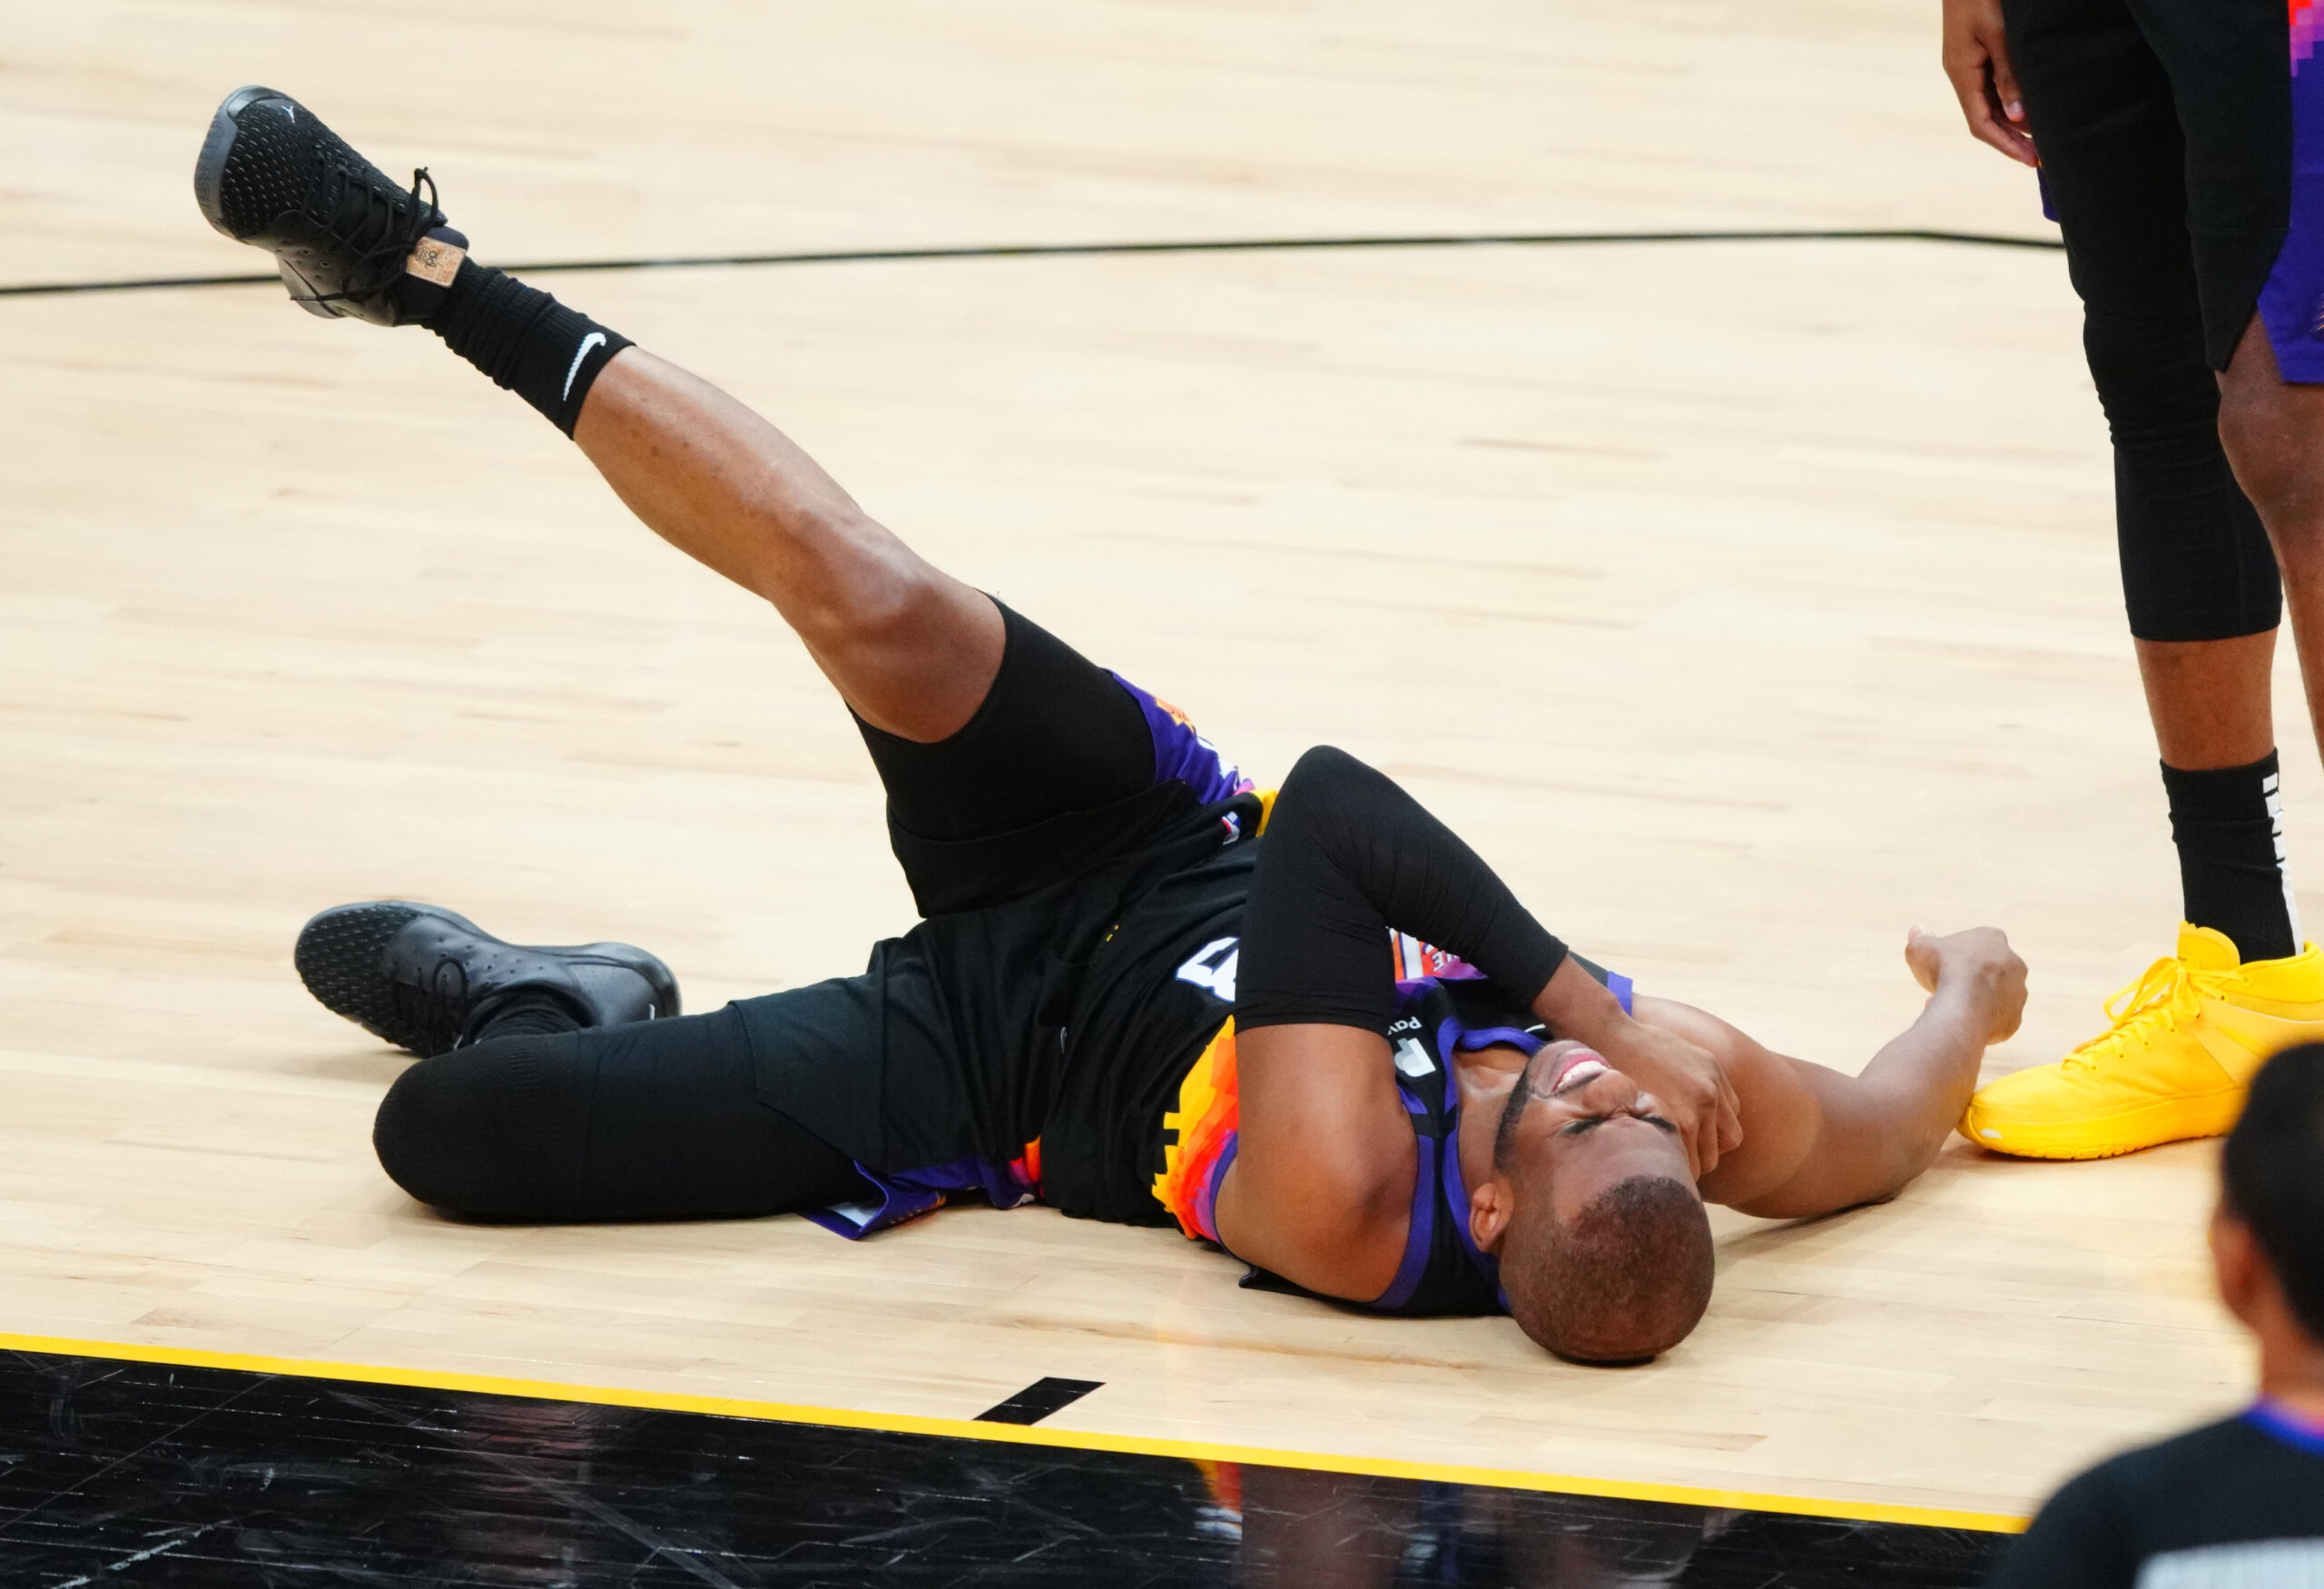 Another postseason, another injury for Chris Paul